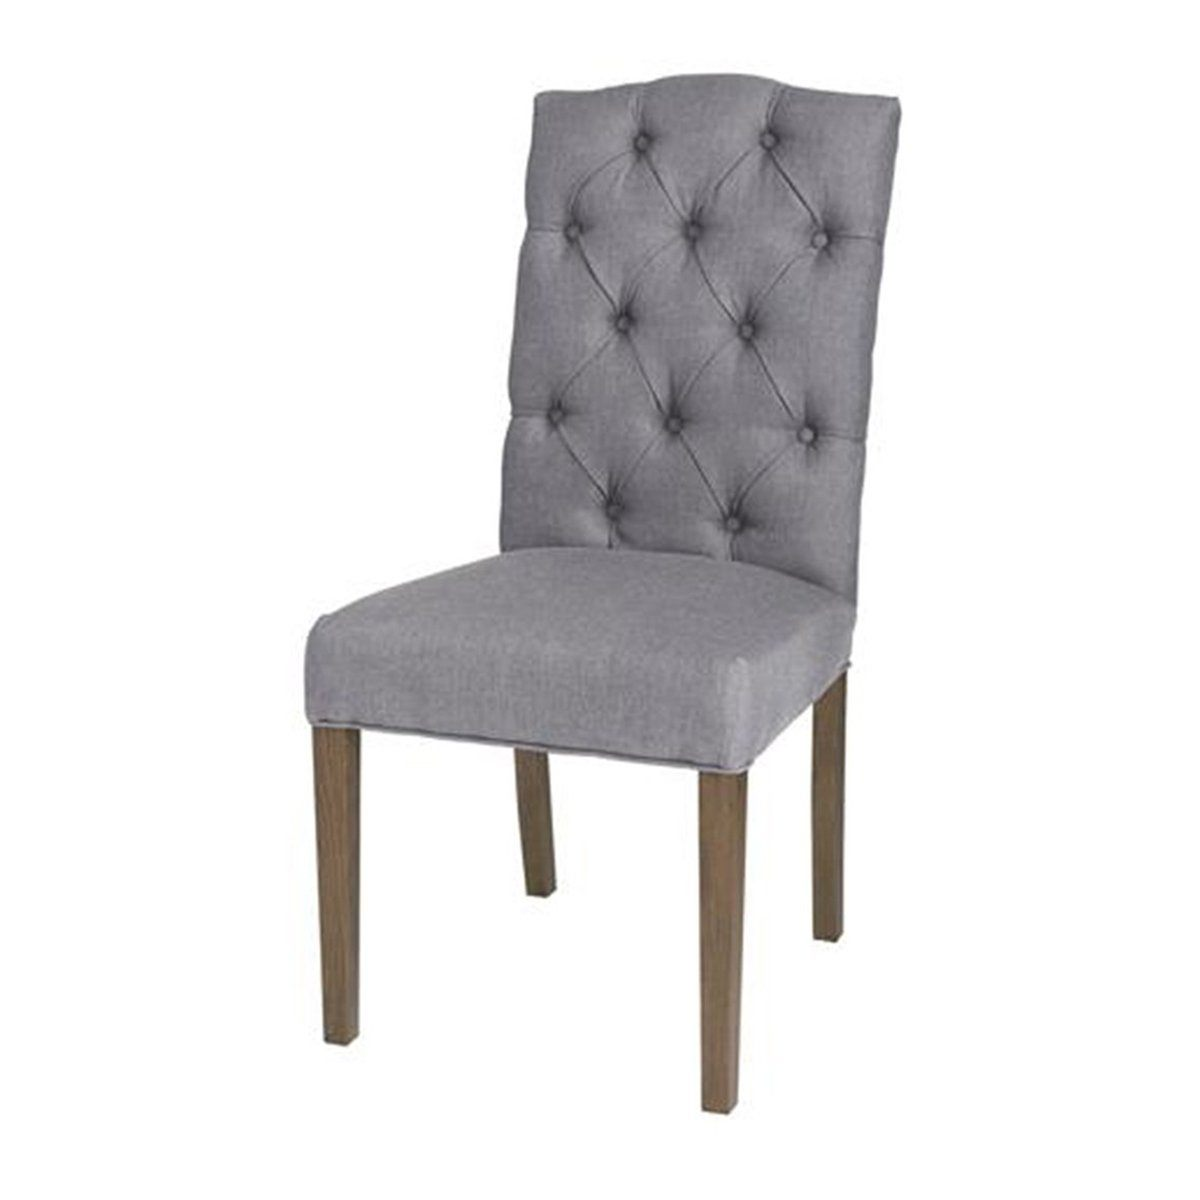 Chester Dining Chair - Dark Grey Twill Chairs LH